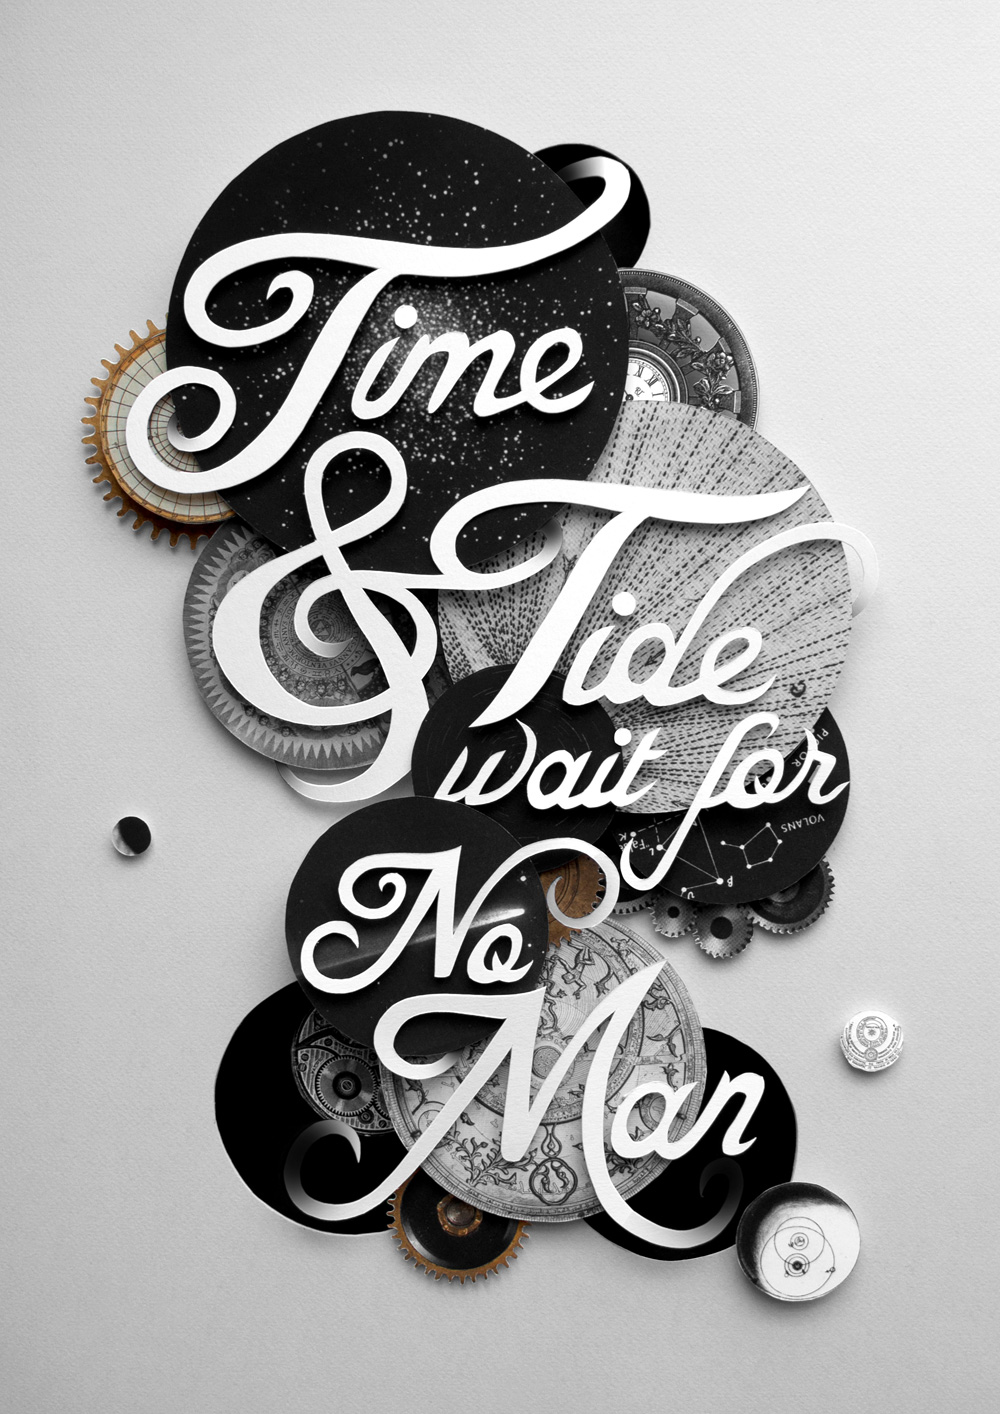 Time & Tide Wait For No Man